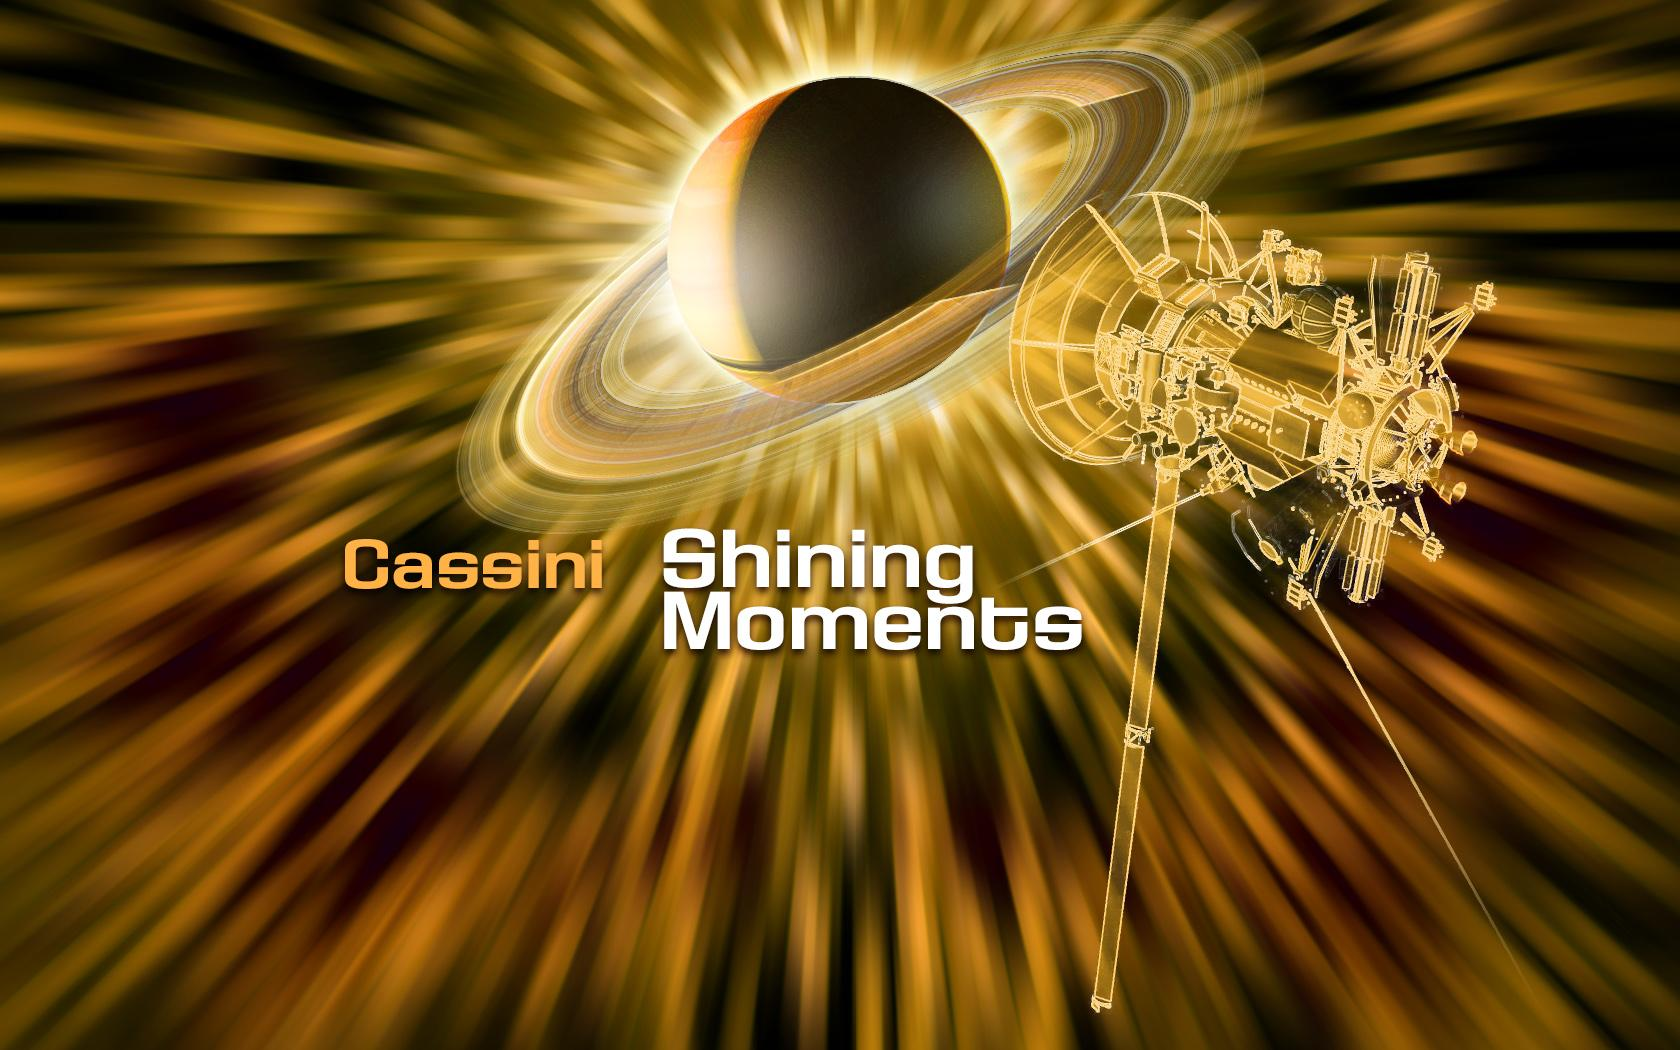 What's your favorite Cassini moment? There are tons to choose from, but we want to start by hearing from you.